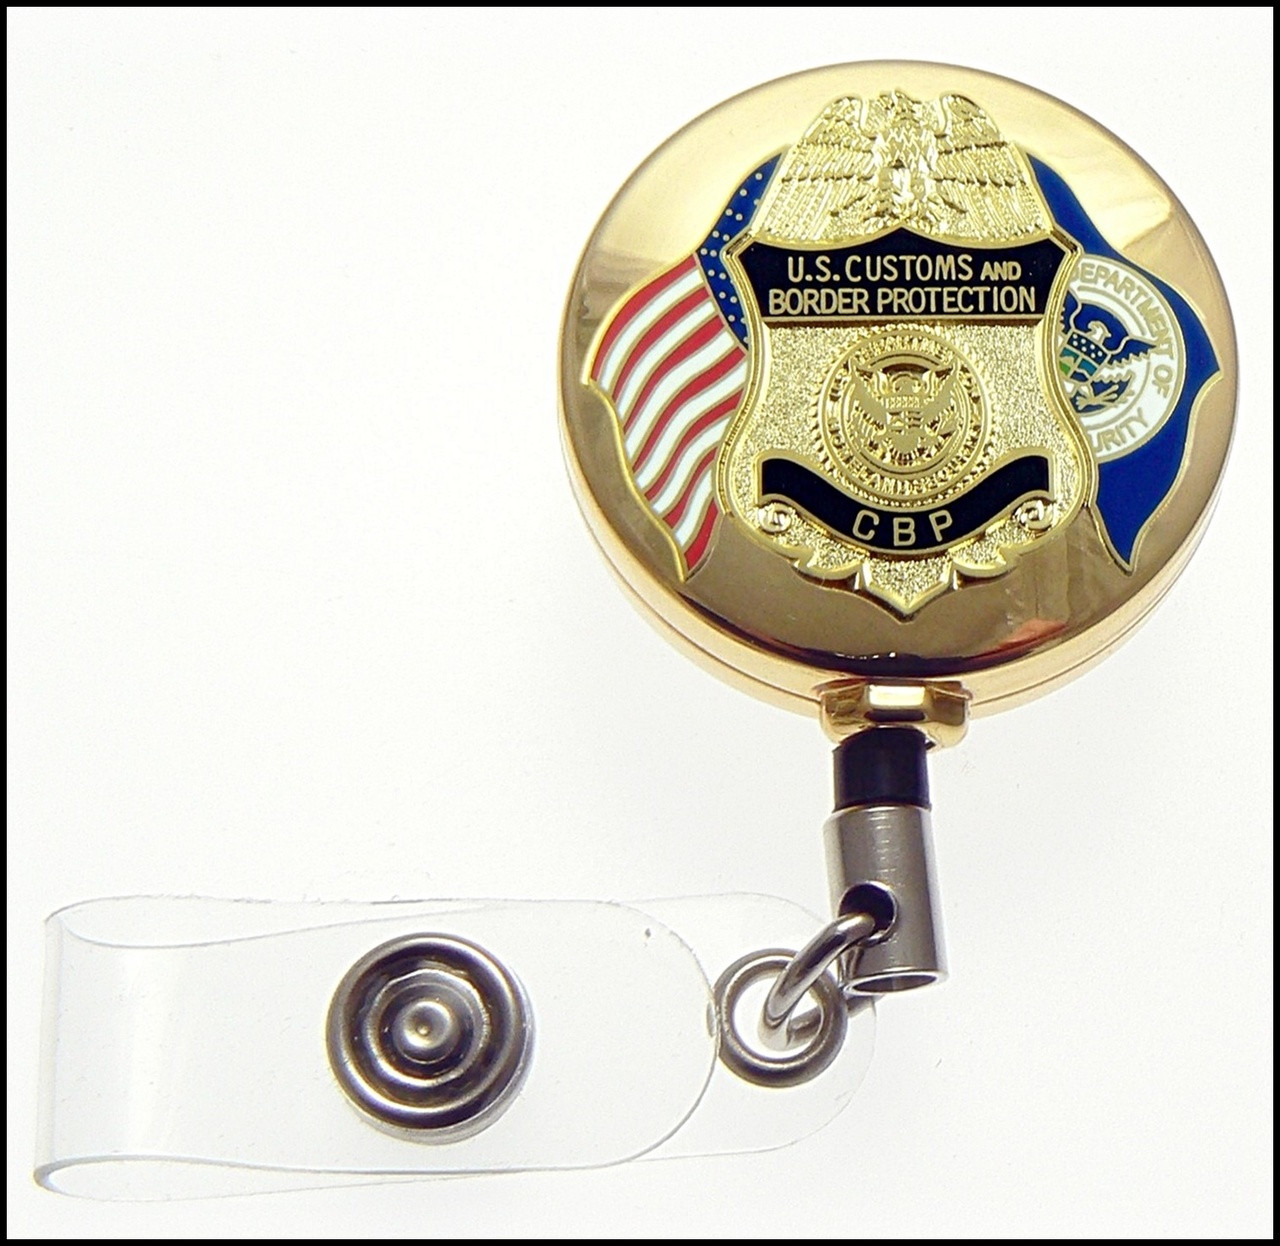 Gold Customs and Border Protection Officer Mini Badge and Flags ID Reel